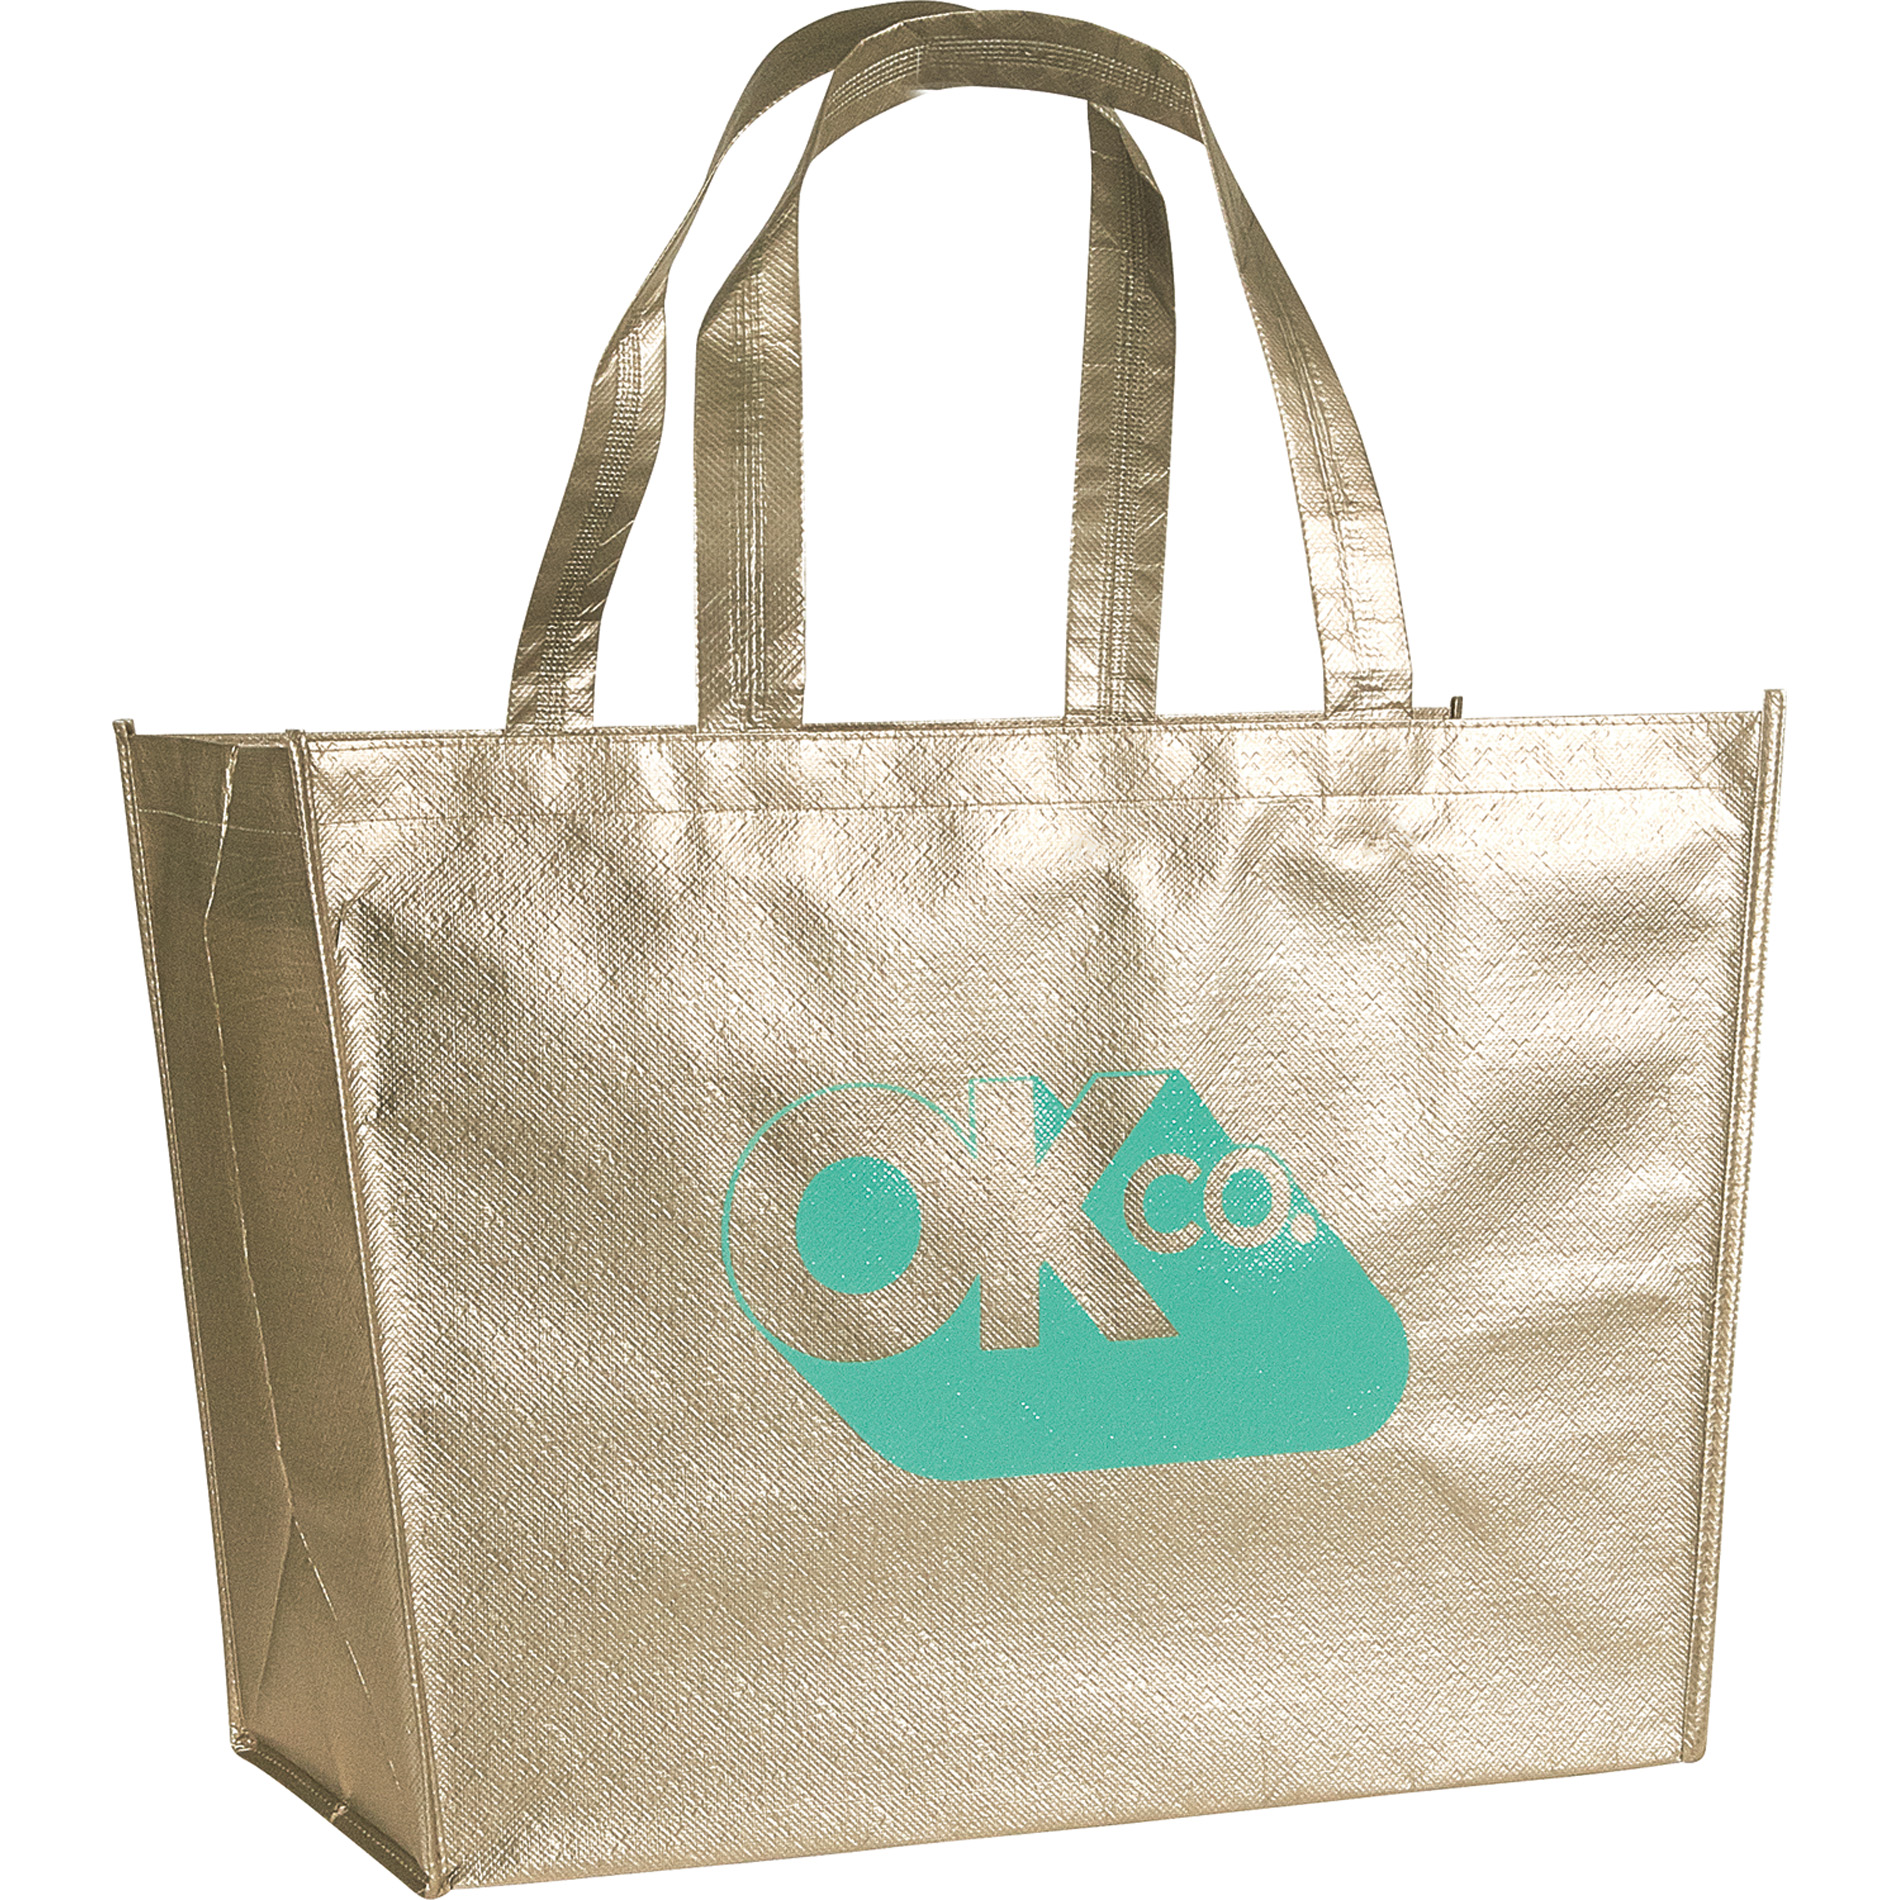 LEEDS 2160-11 - Alloy Laminated Shopper Tote